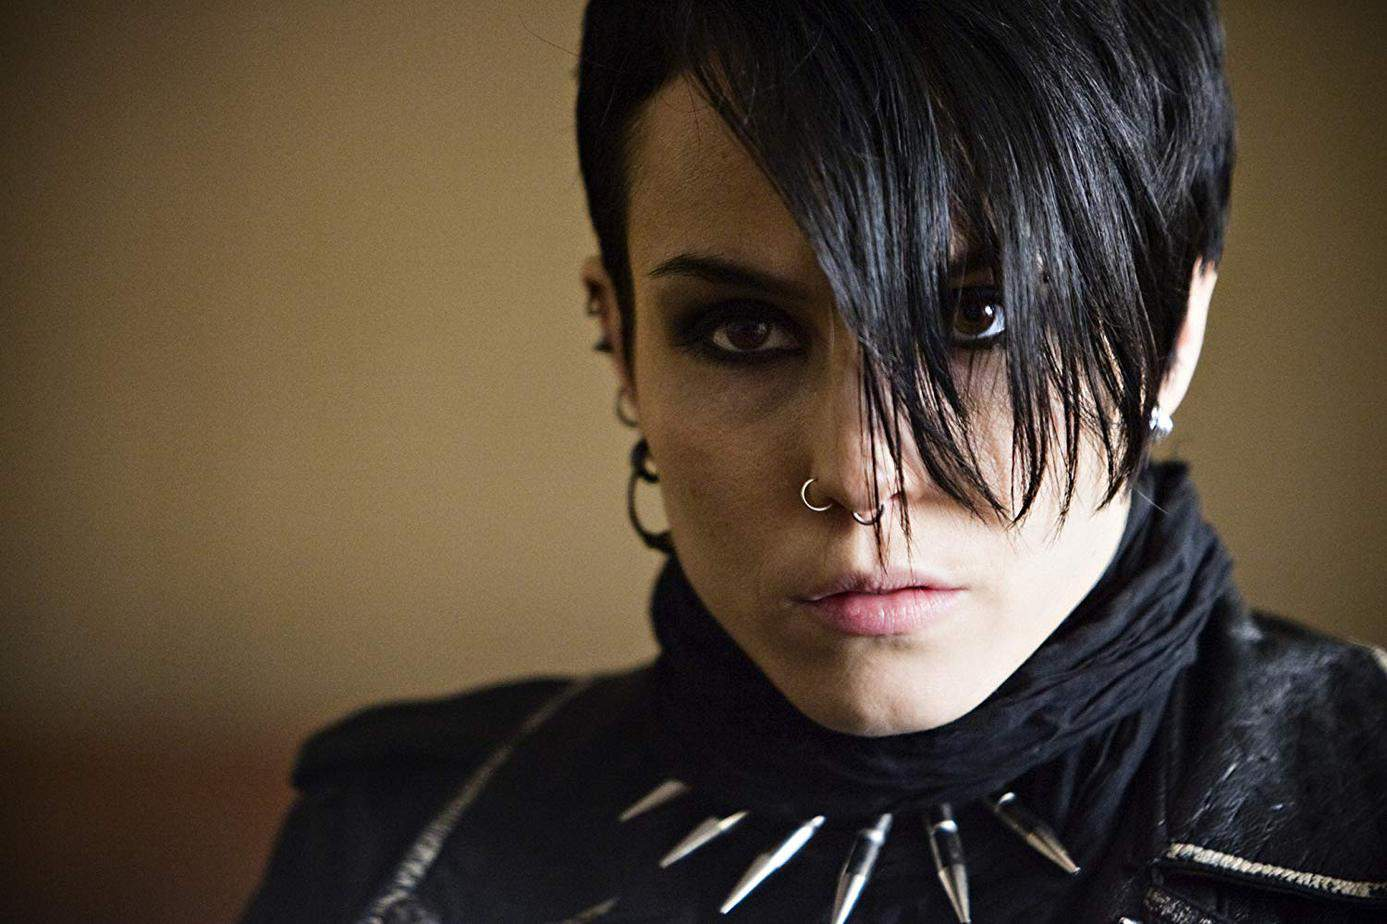 The Girl With the Dragon Tattoo (2009 and 2011)